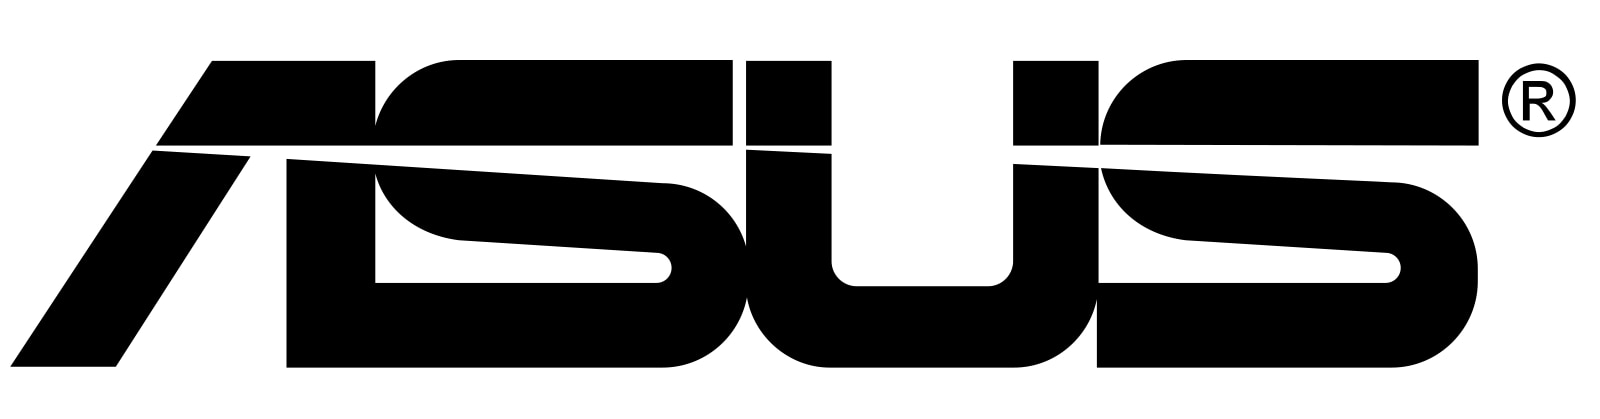 Asus windows on Arm logo